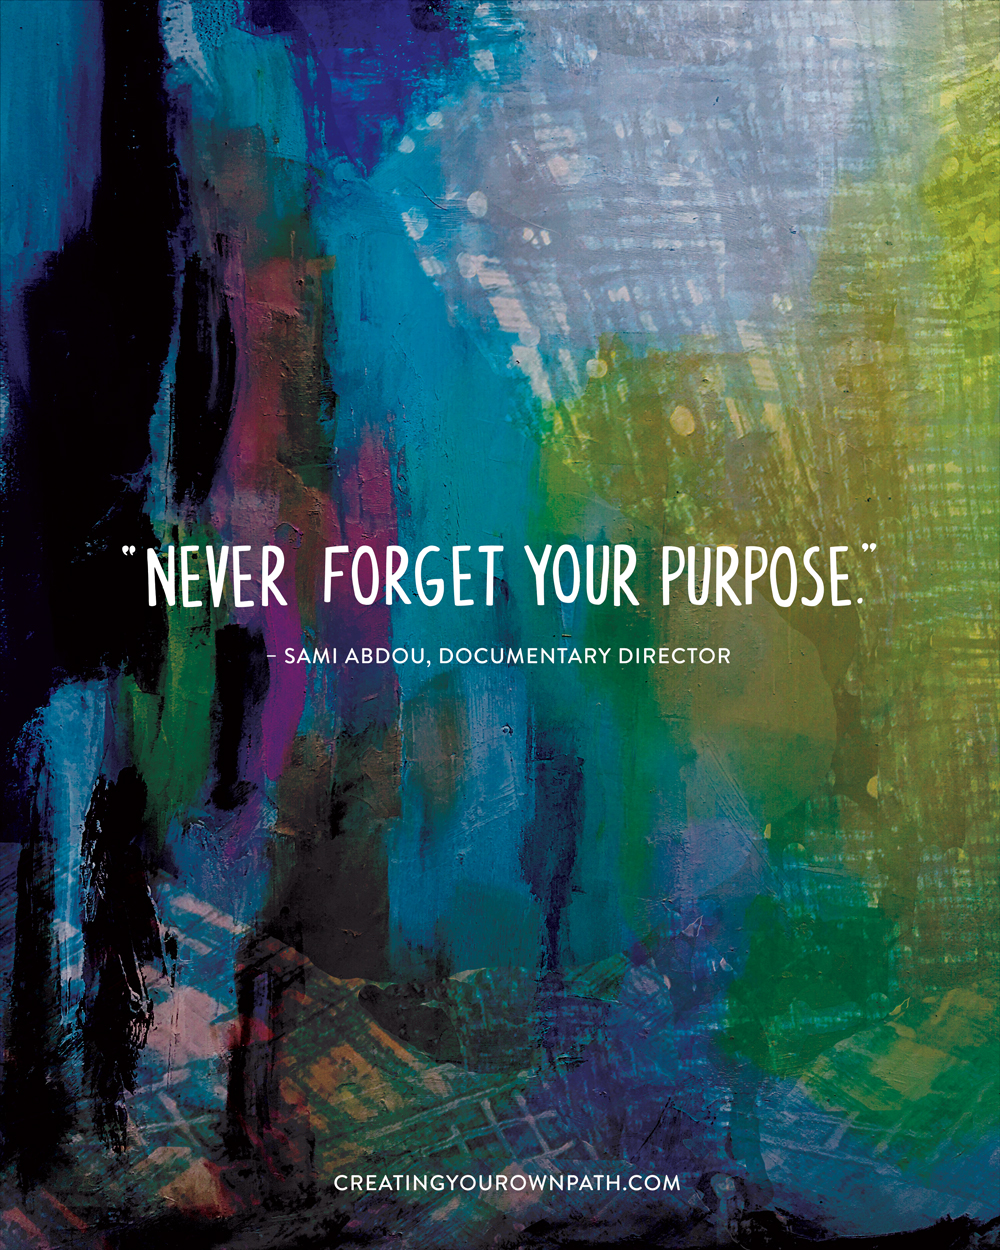 """Never forget your purpose."" — Documentary Director Sami Abdou // Art by  Melanie Biehle"